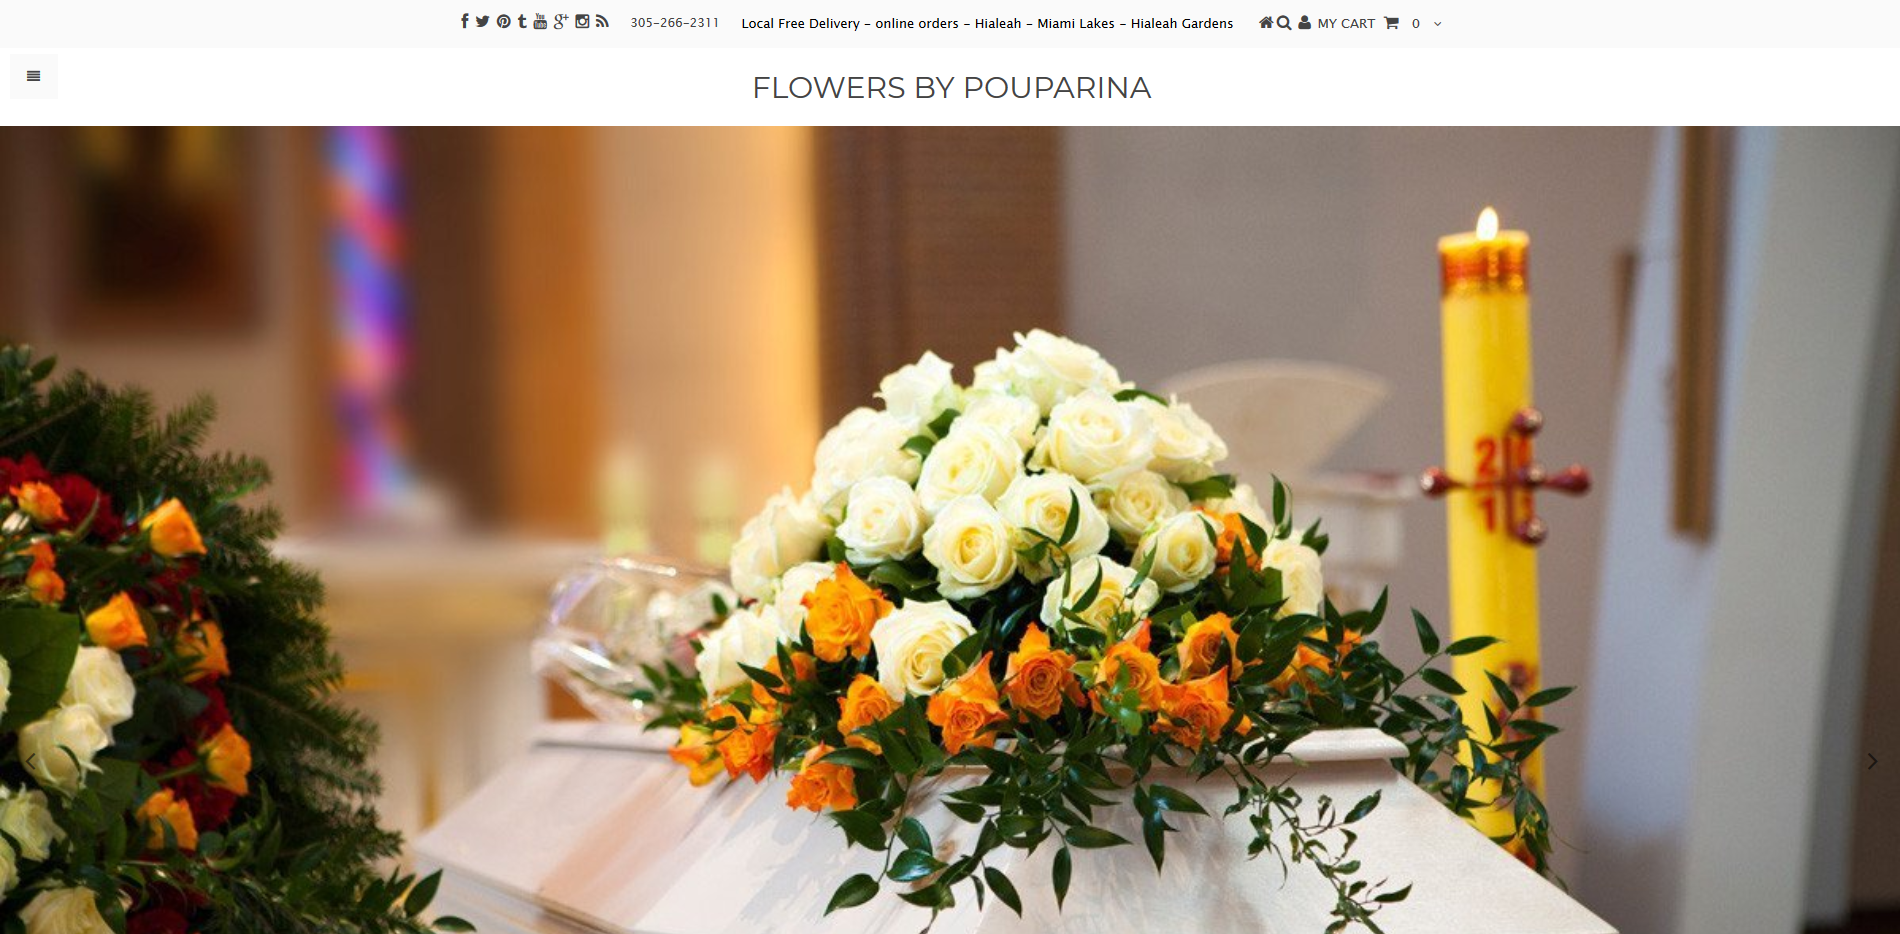 Flowers By Pouparina Shopify Website Design by Notch Solutions